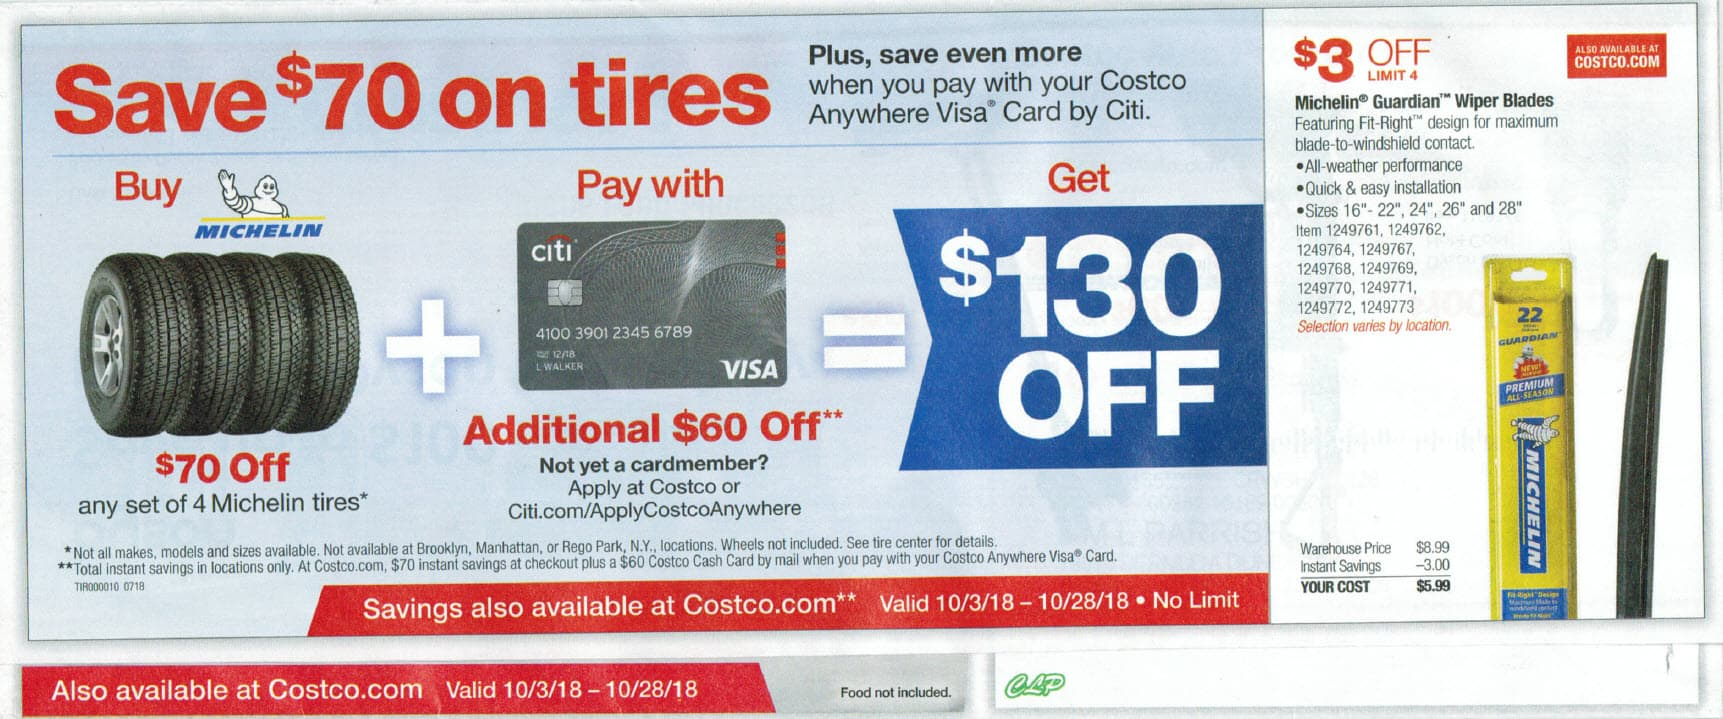 Costco Michelin Tires Pay By Citi Visa Total 130 Off